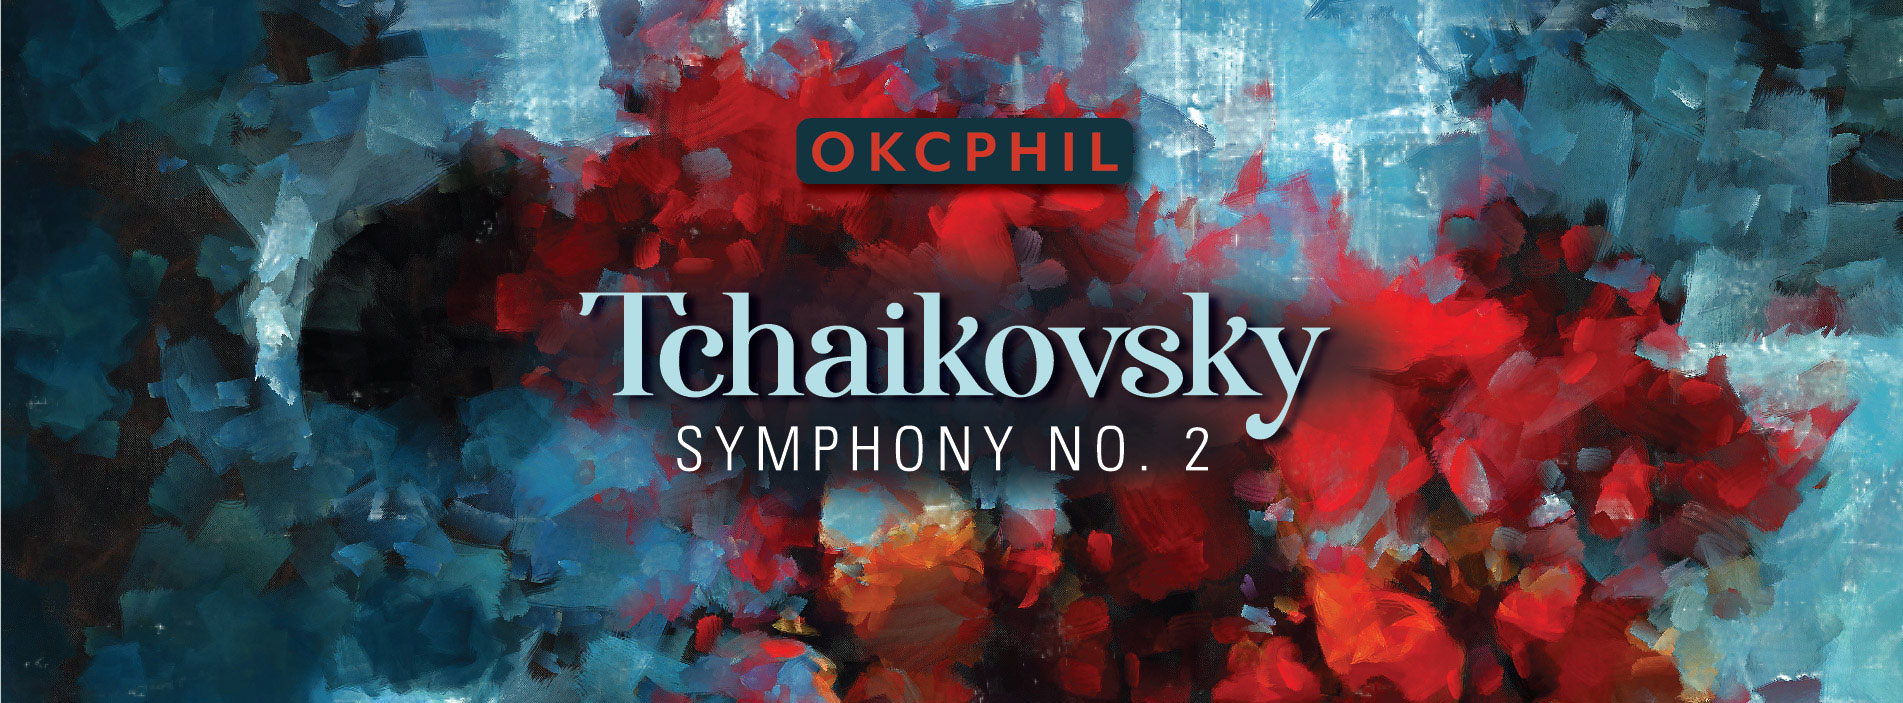 Only Tchaikovsky!